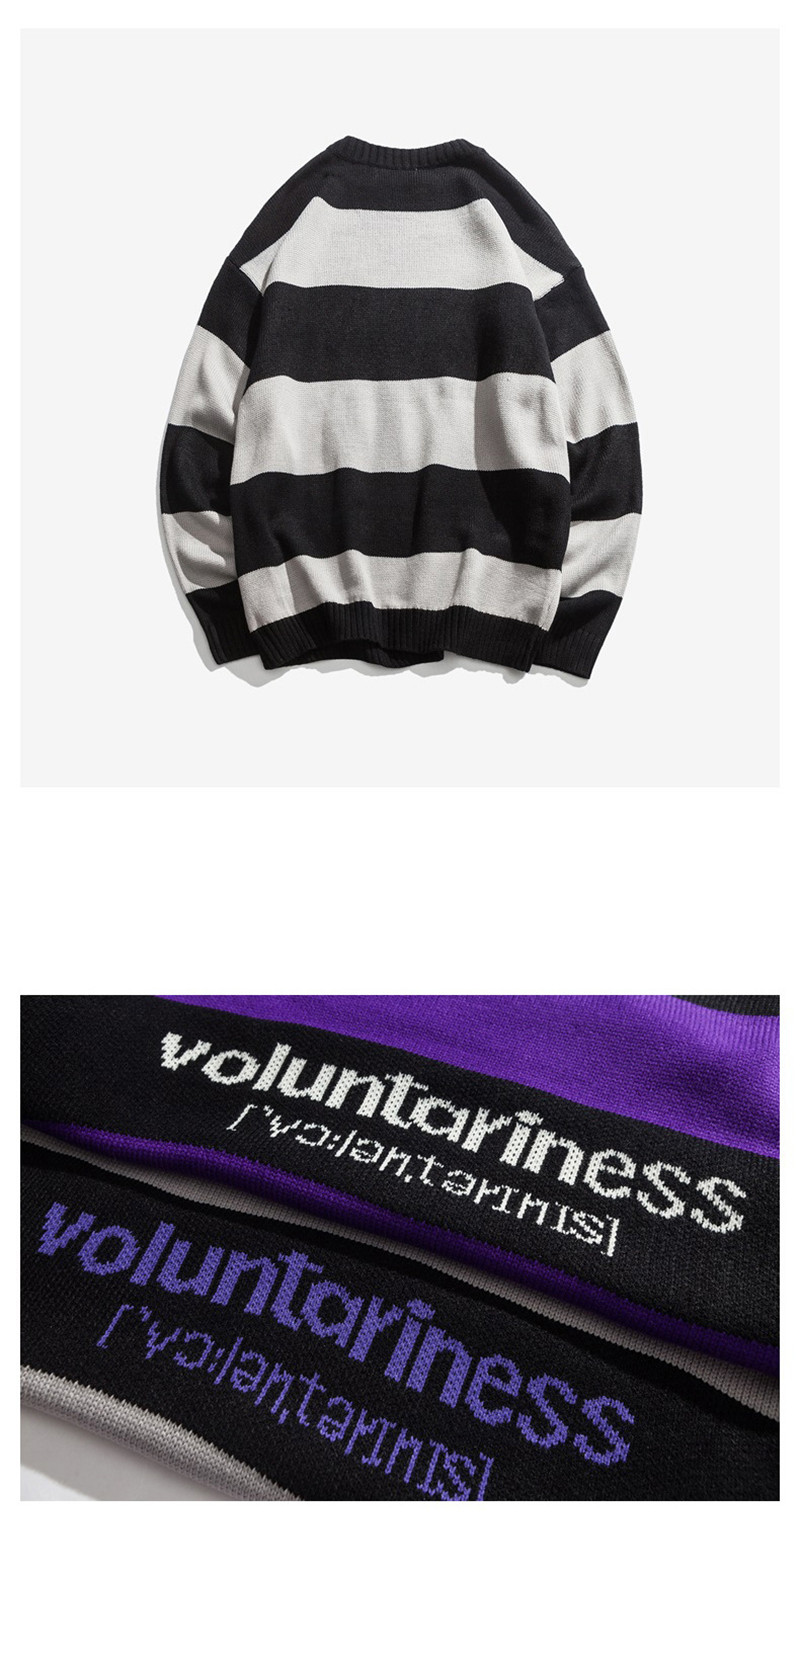 Knitted Japanese Harajuku Hip Hope Letter Pattern Sweater for Men Urban Boys Knit Streetwear Striped Pullover Jumper Plus Size 9